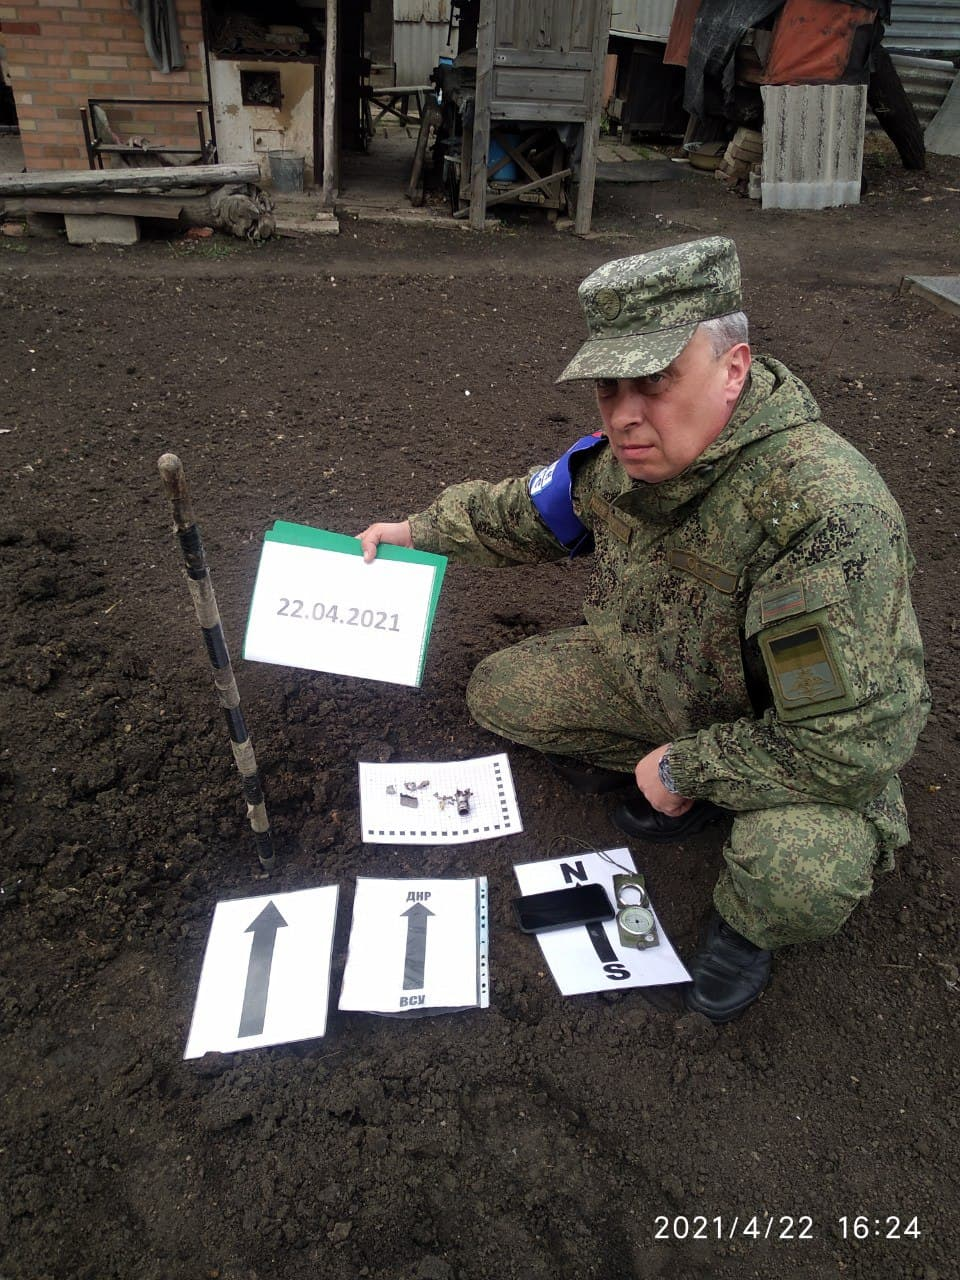 Remains of NATO standard mortar shells from the Ukrainian army